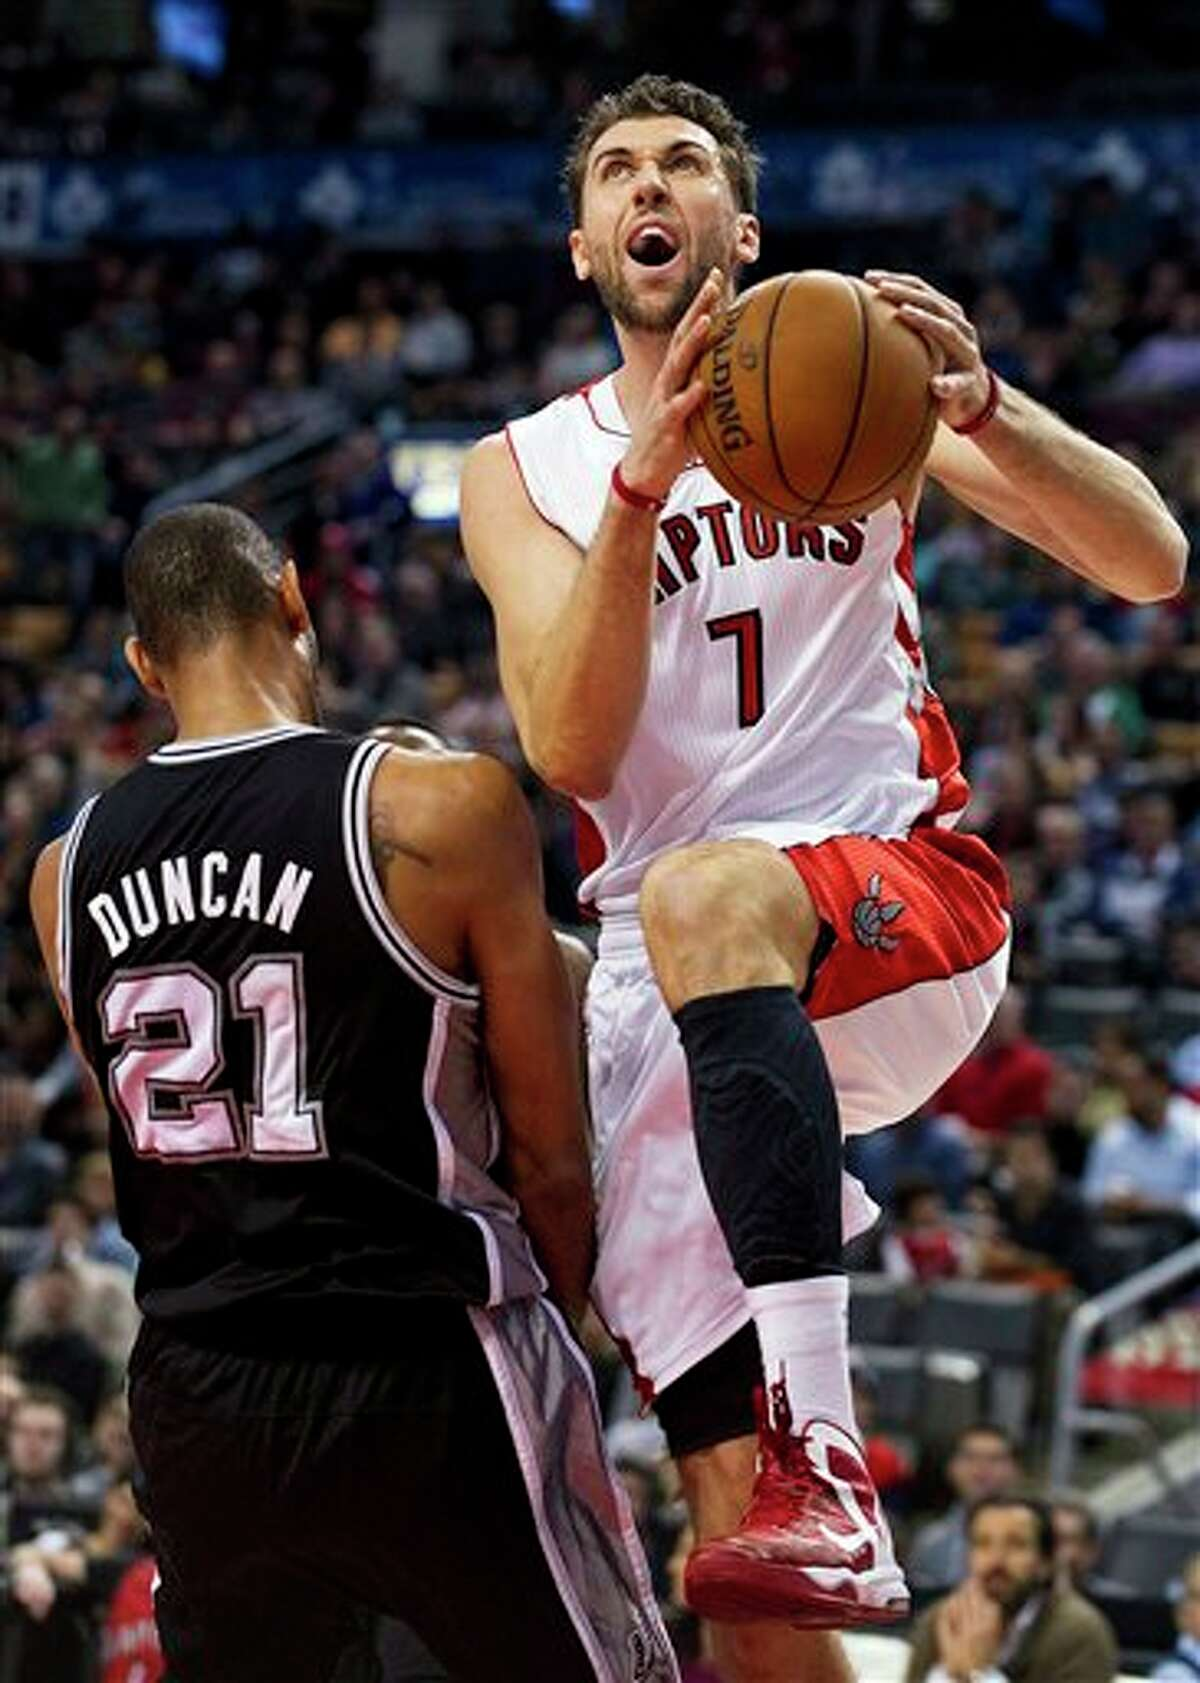 Toronto Raptors' Andrea Bargnani (7) draws a foul driving to the basket against San Antonio Spurs' Tim Duncan (21) during the first half of an NBA basketball game, Sunday, Nov. 25, 2012, in Toronto. (AP Photo/The Canadian Press, Aaron Vincent Elkaim)